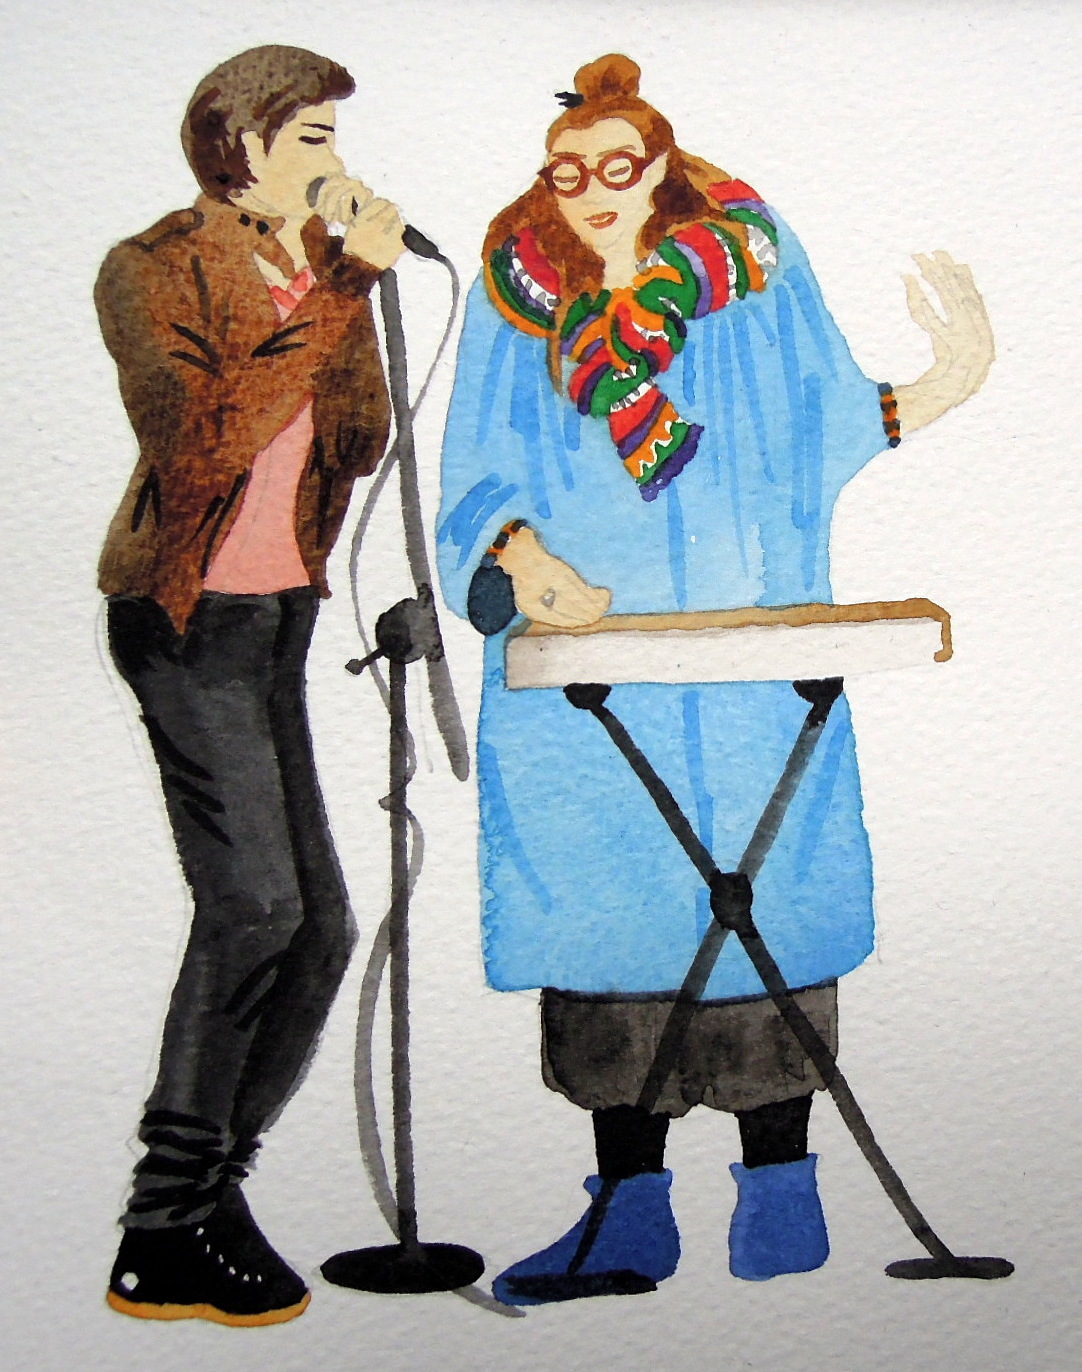 Two musicians rendered in watercolor